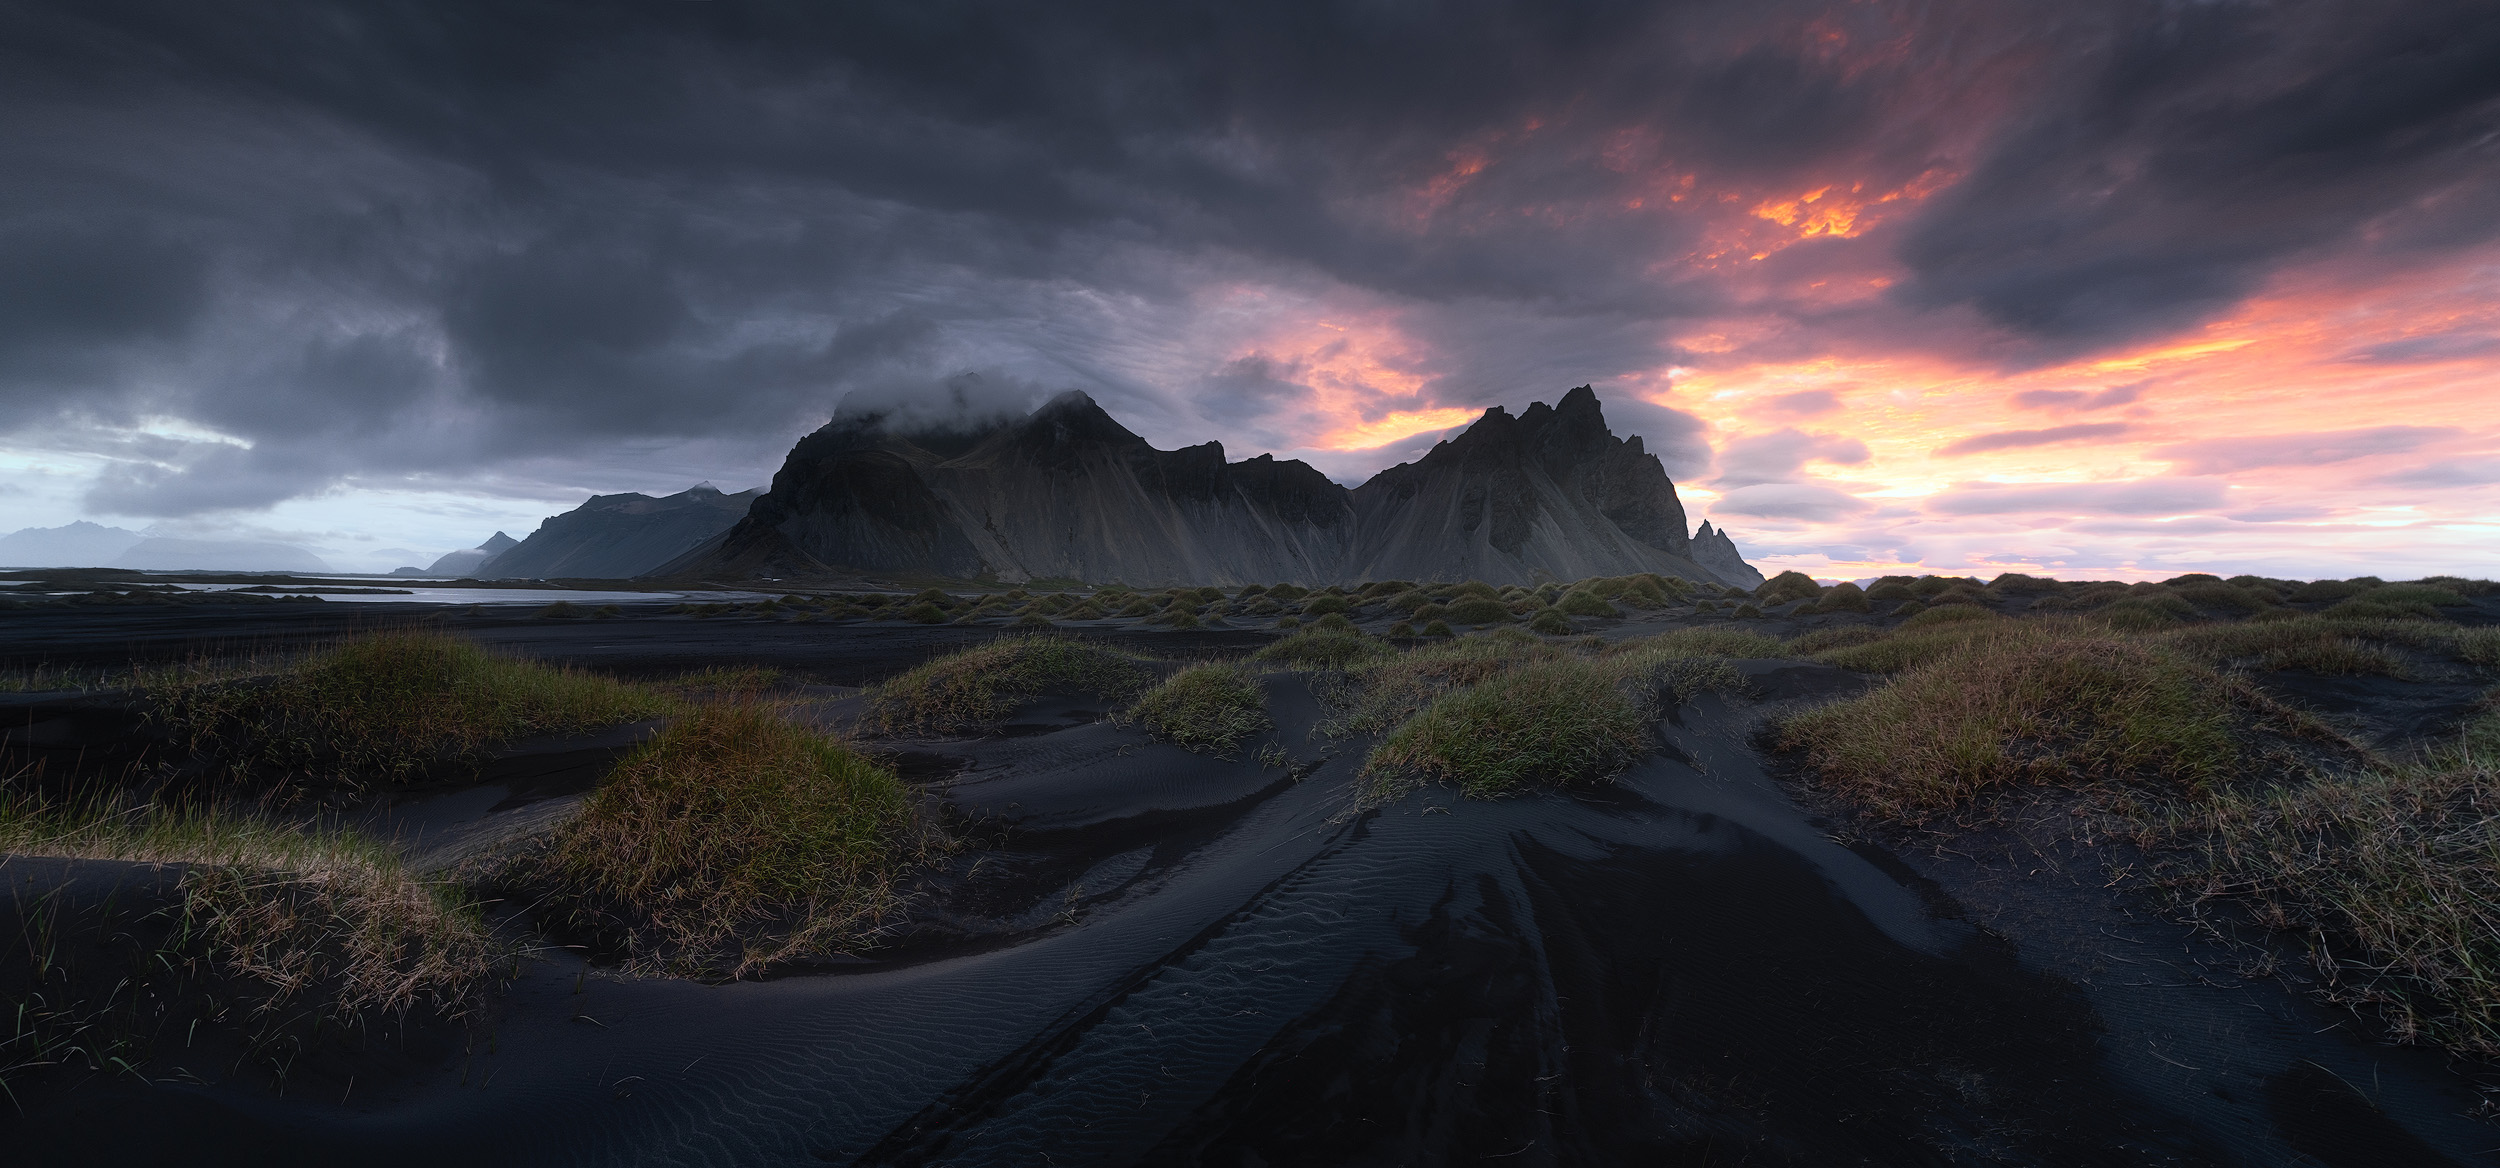 A panorama of the black sand dunes and jagged peaks of the Vestrahorn midway between sunset and sunrise.